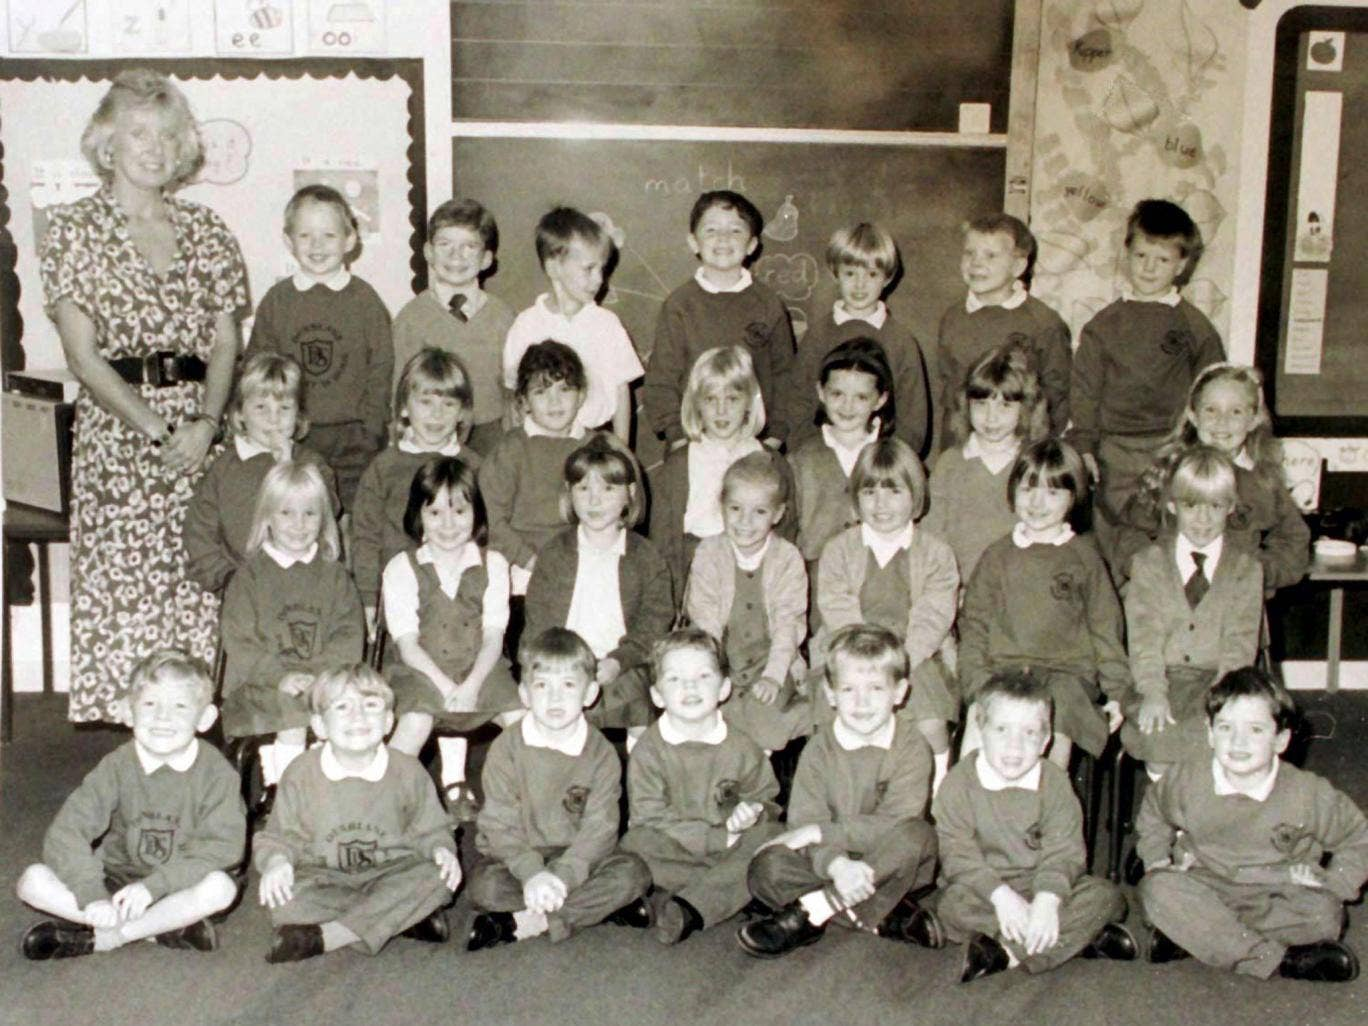 Gwenne Mayor, far left, was shot dead with 16 of her primary class in Dunblane in 1996